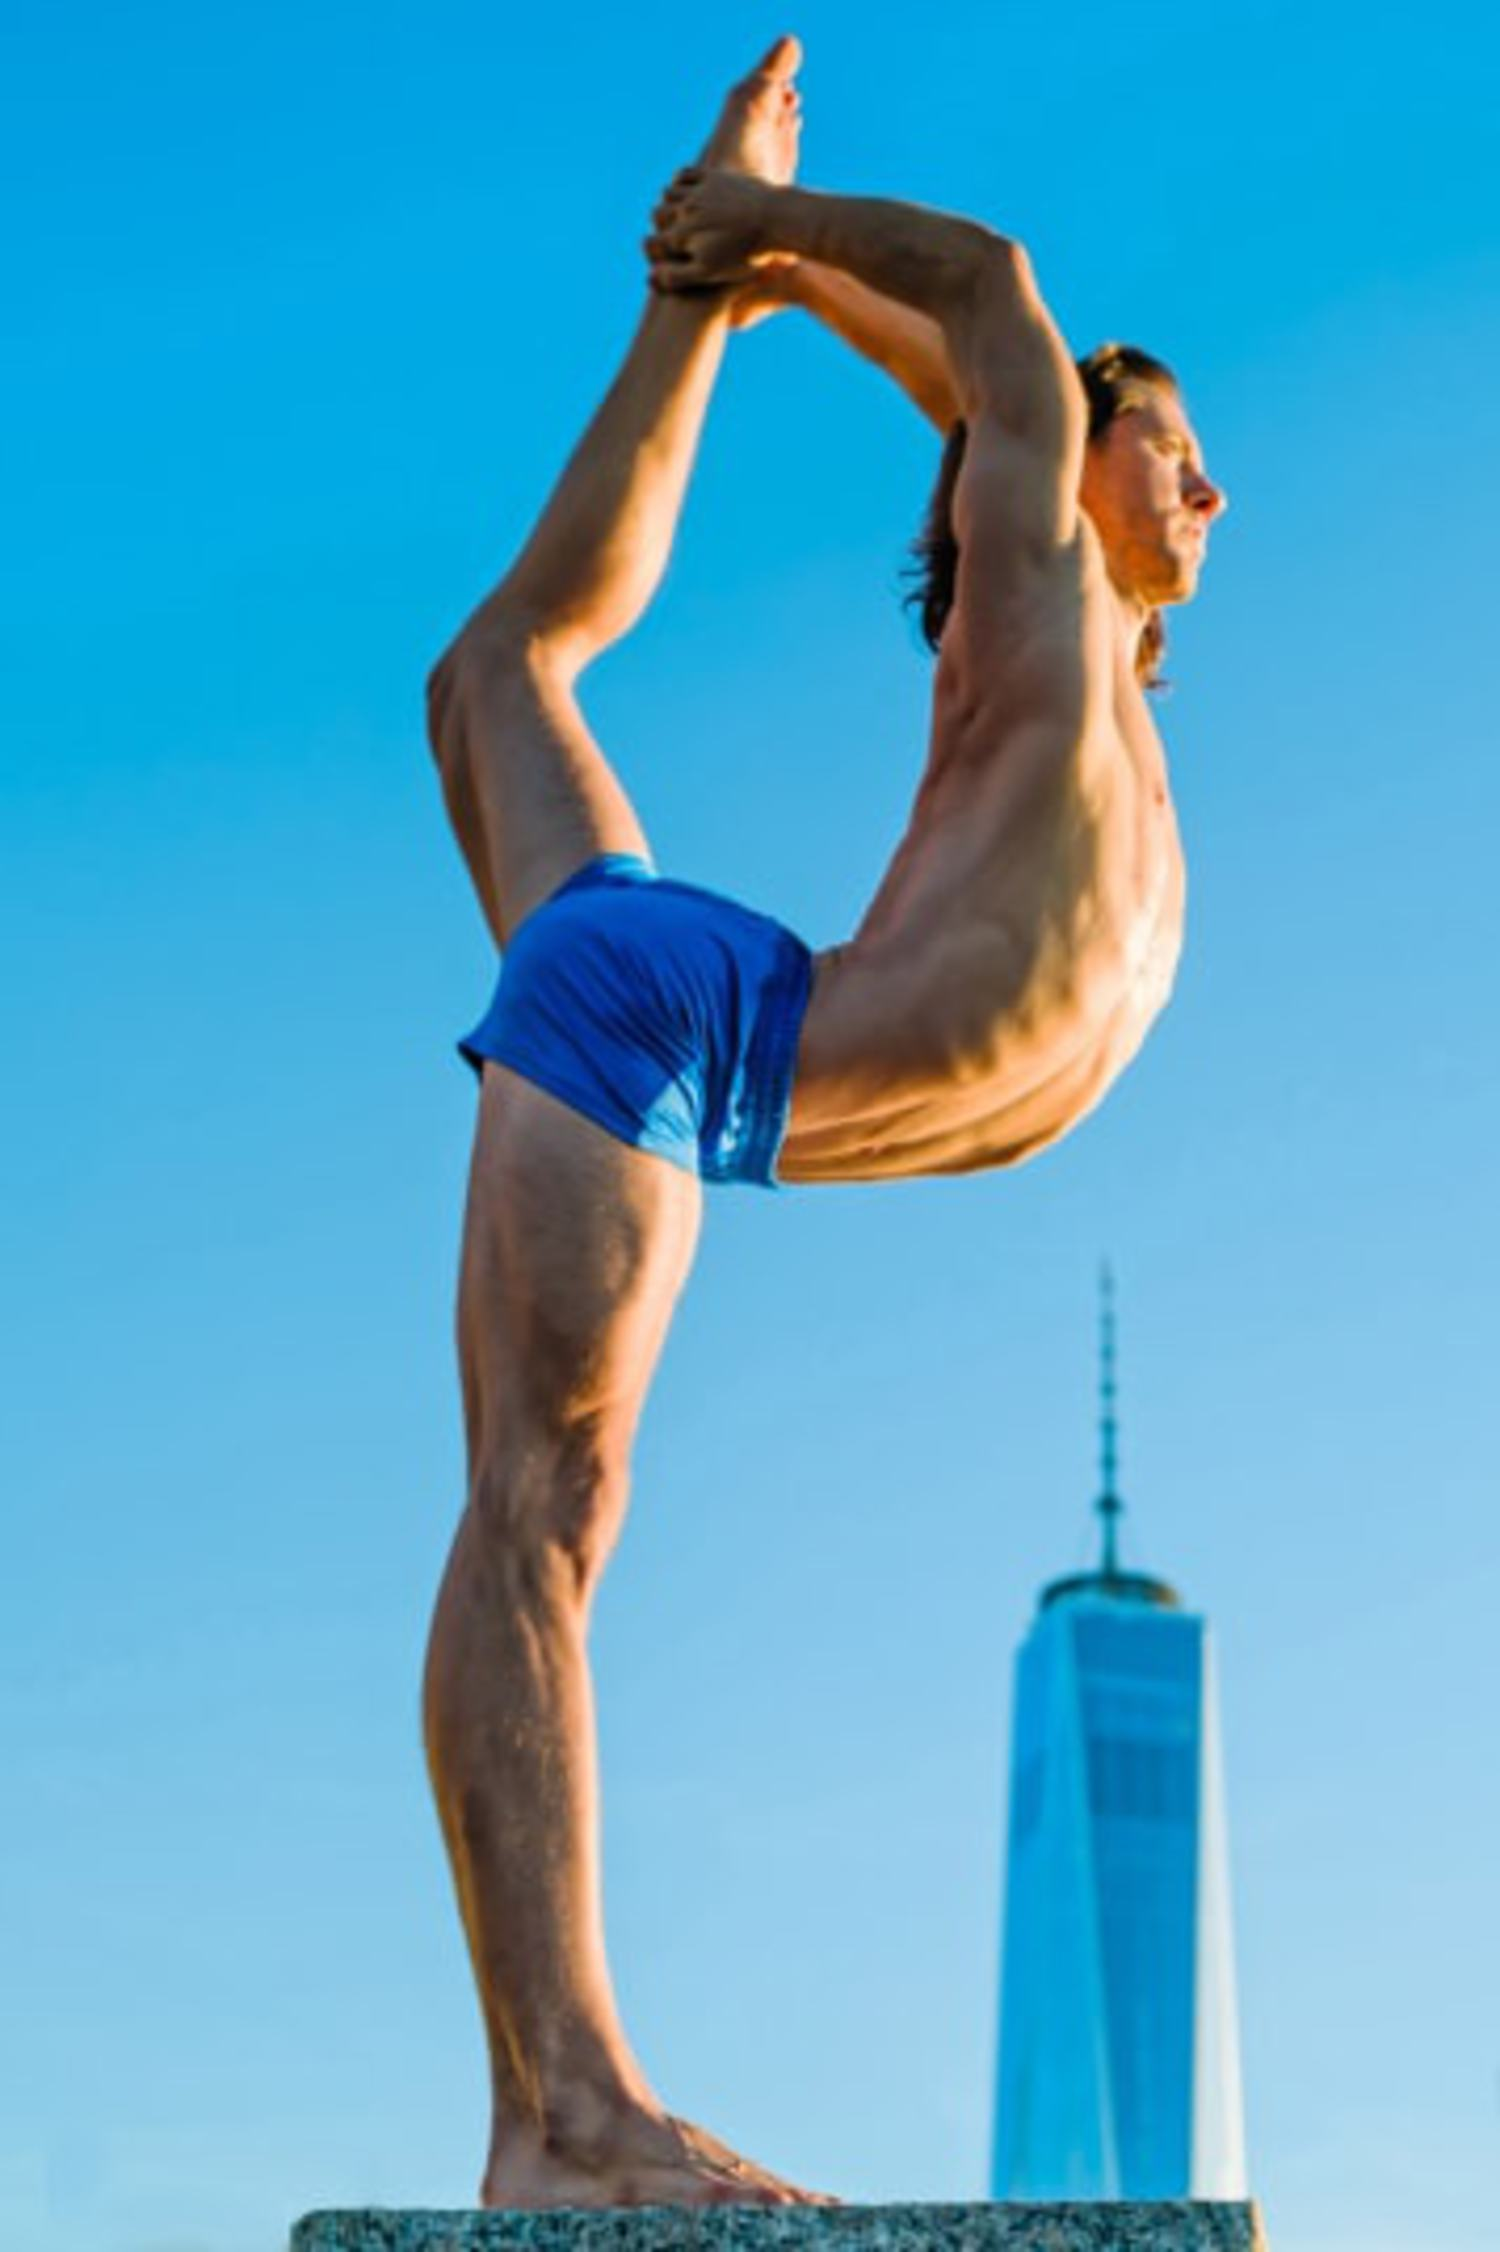 Performing yoga with the One World Trade Center in New York as a backdrop